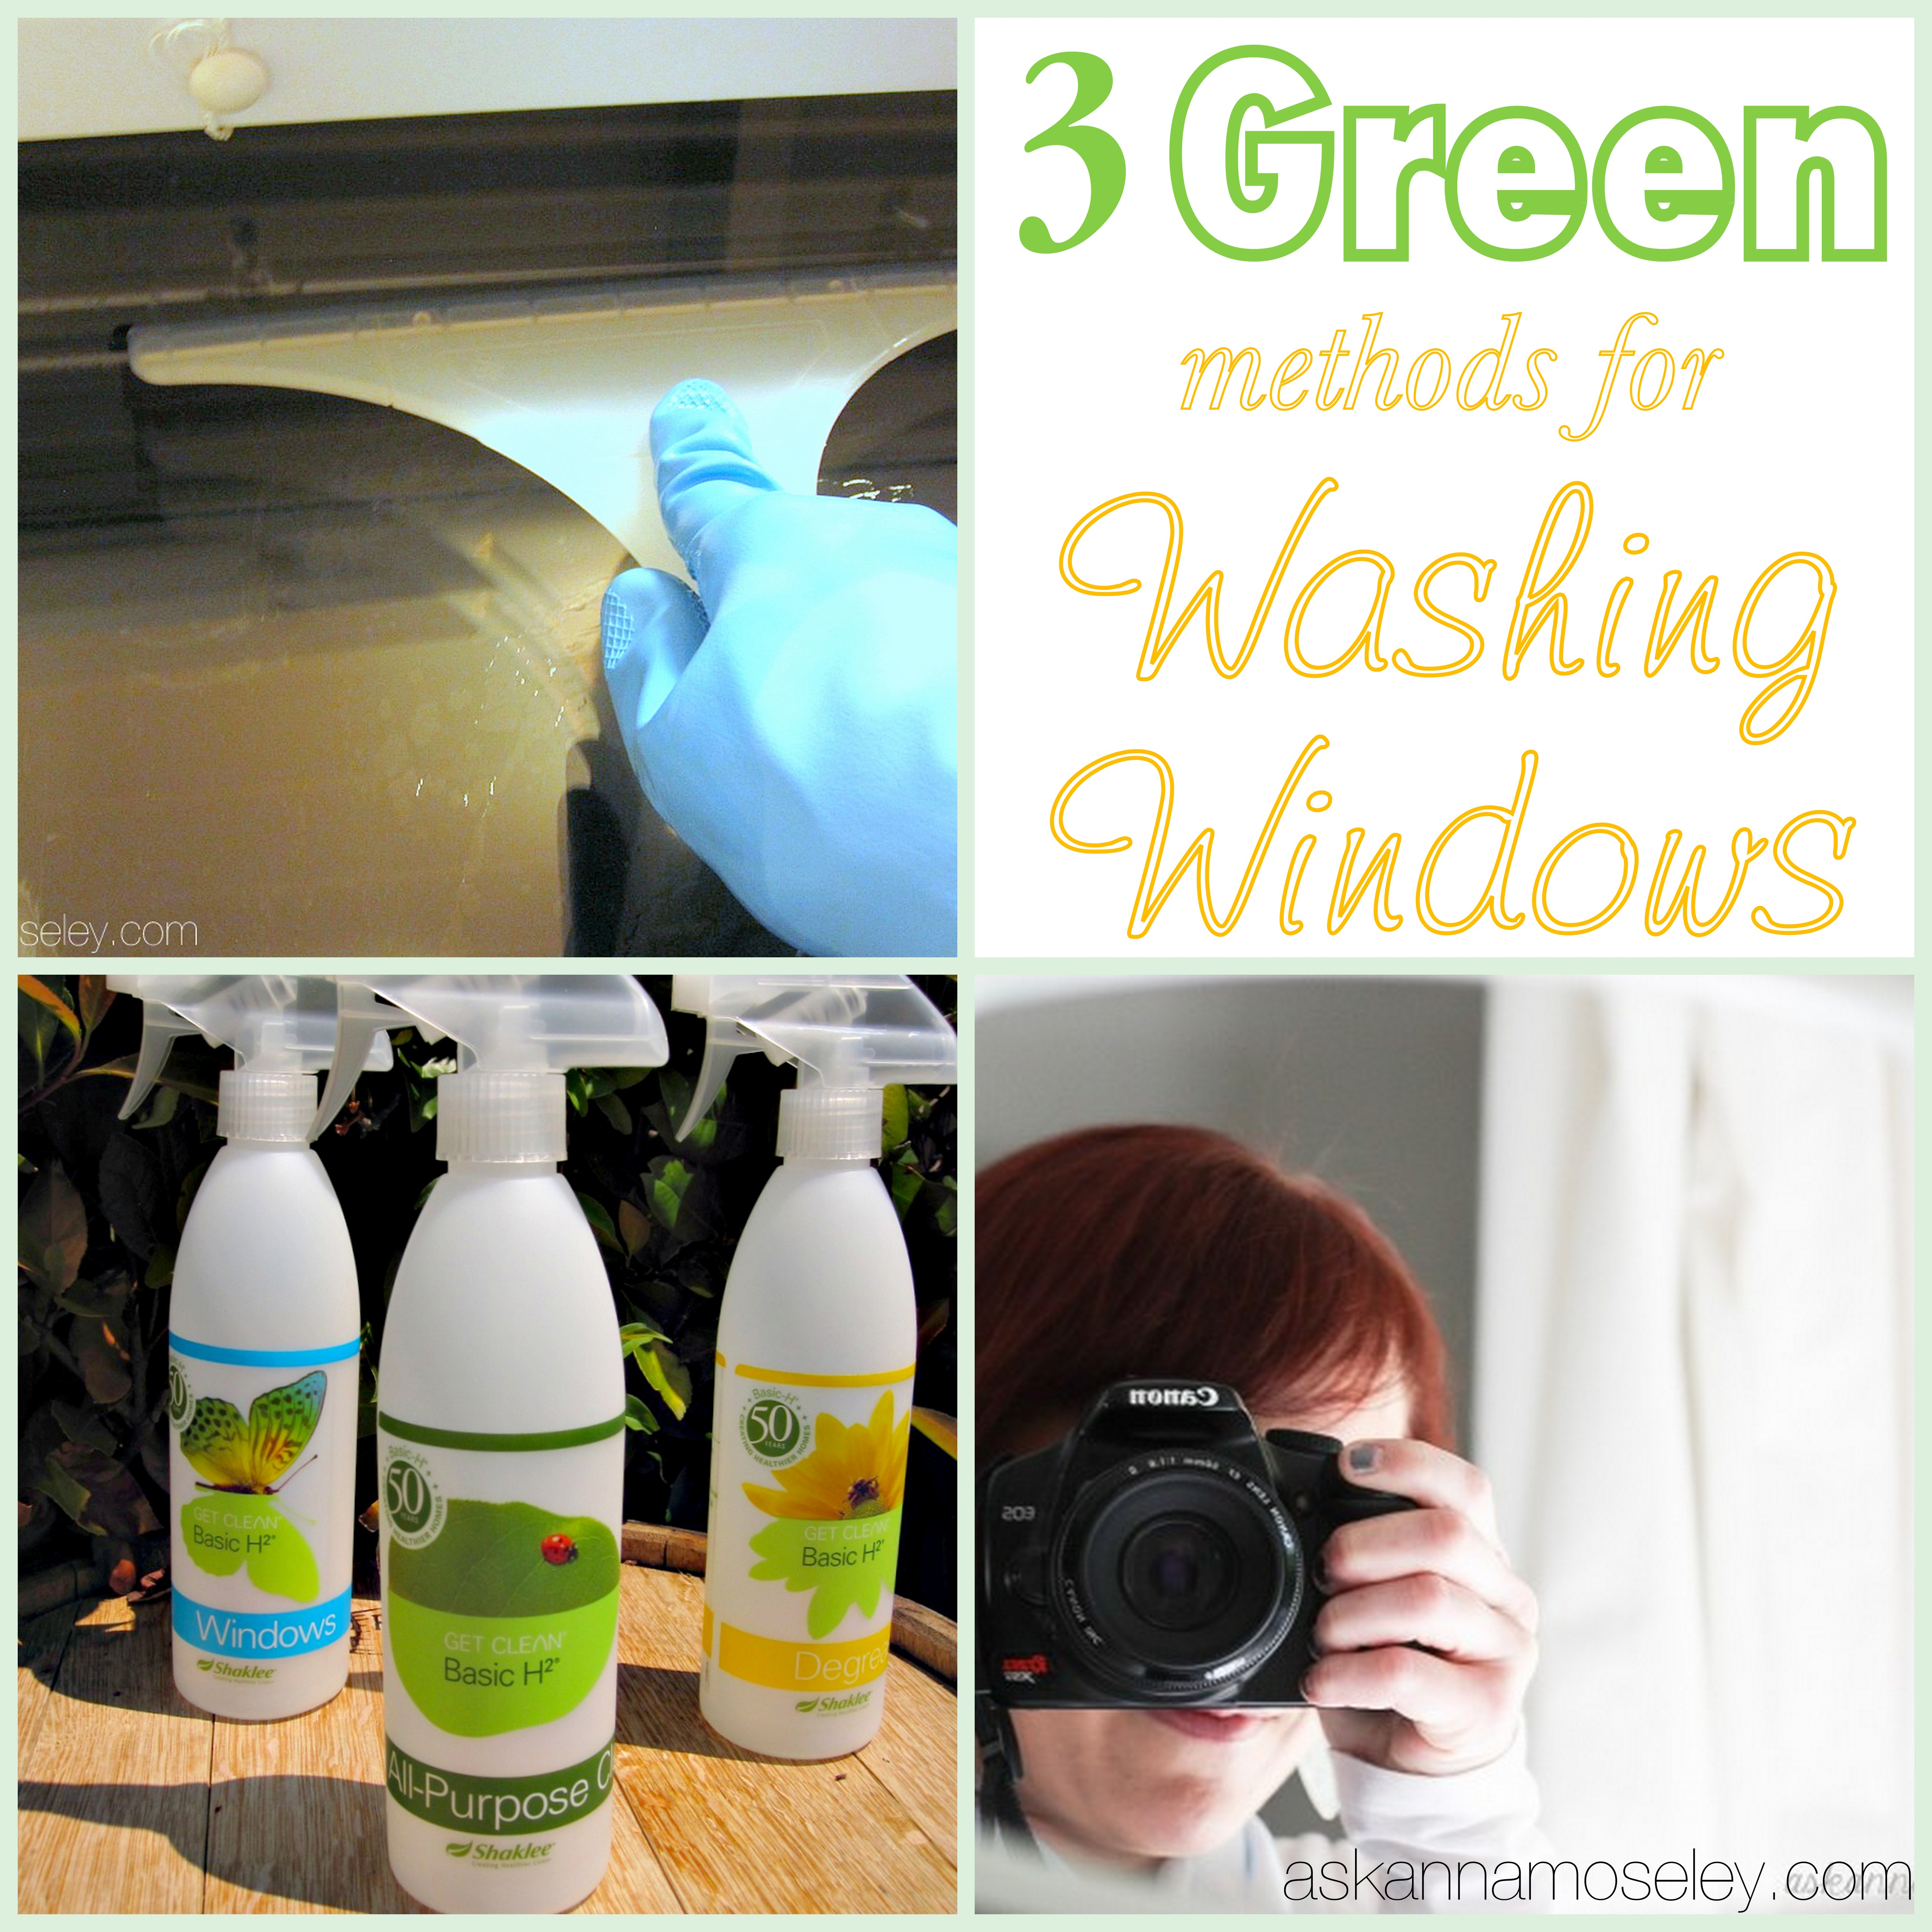 Love to Clean ~ Washing Windows & Mirrors